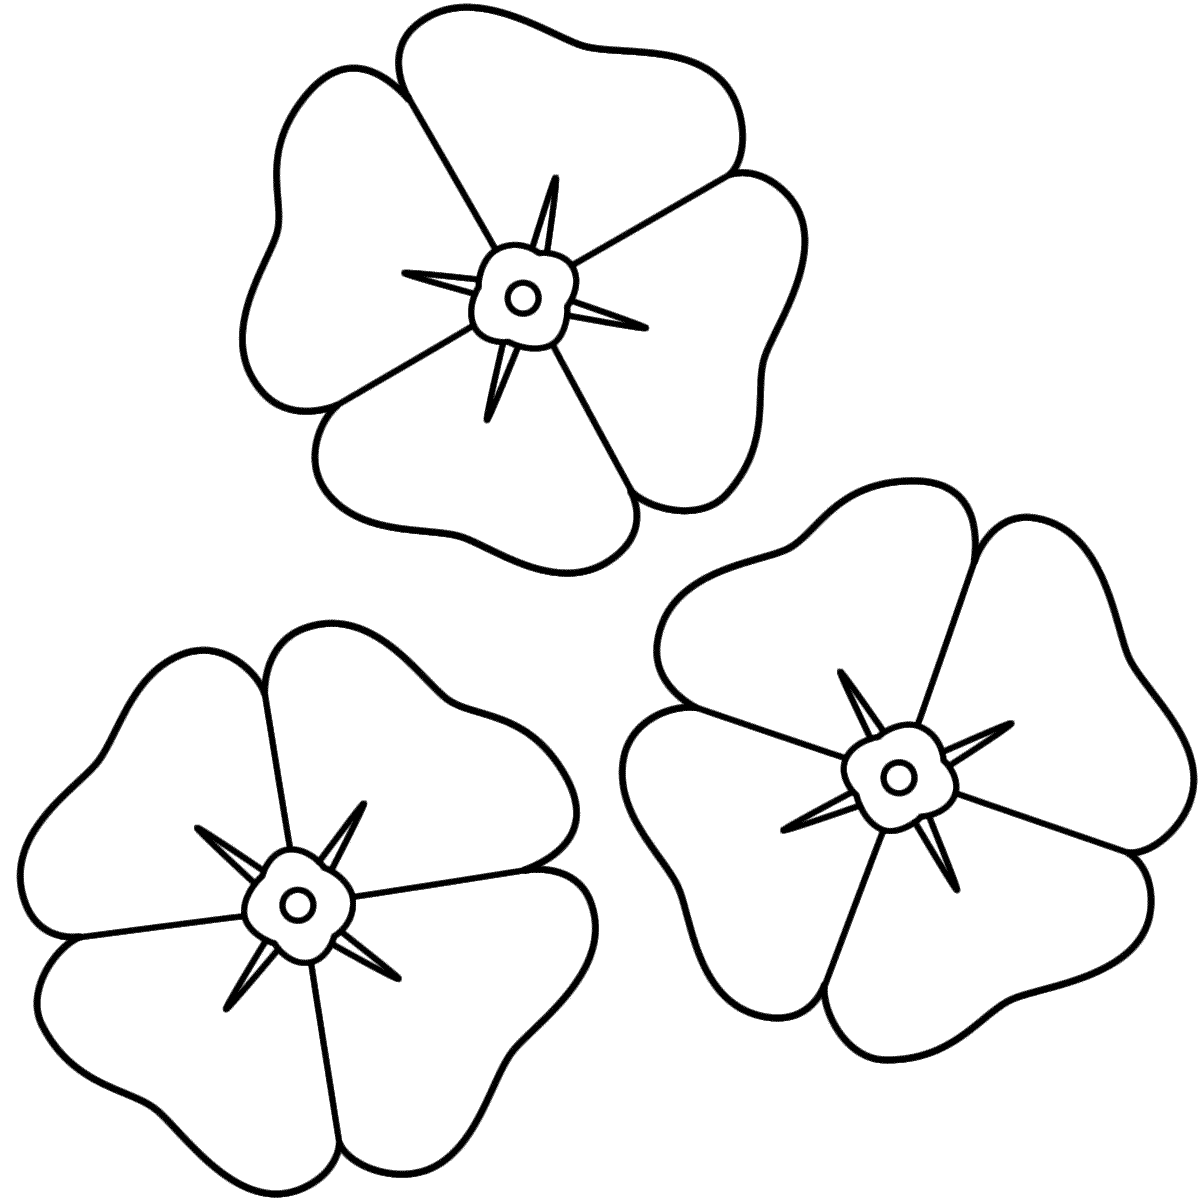 poppy coloring page 18 poppy coloring pages pdf jpg free premium templates poppy coloring page